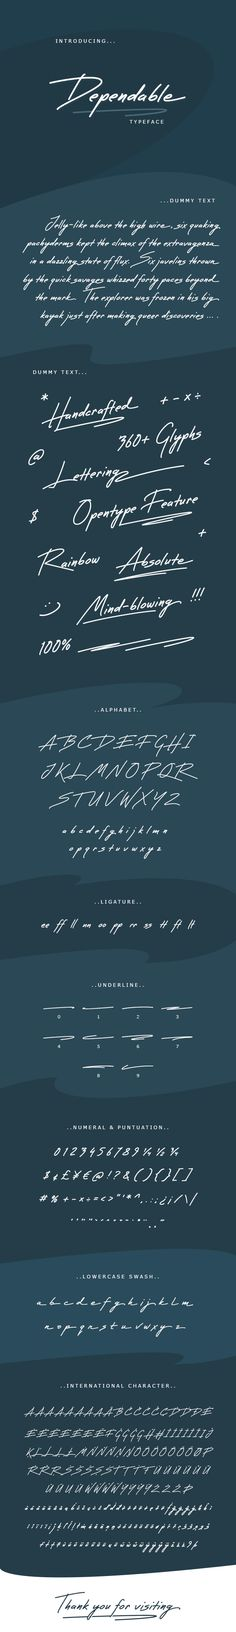 Dependable Font   'Dependable' is a nice handwritten Typeface. It gives a complete authentic feel on your text.  Total 360+ glyphs available including alphabets, numerals, punctuation, international and other characters.  Standard Ligatures and Swashes are available.  Underline strokes are included in TTF/OTF file.  Hope this Typeface will be fit on your next design project.  If you have any question please feel free to contact.